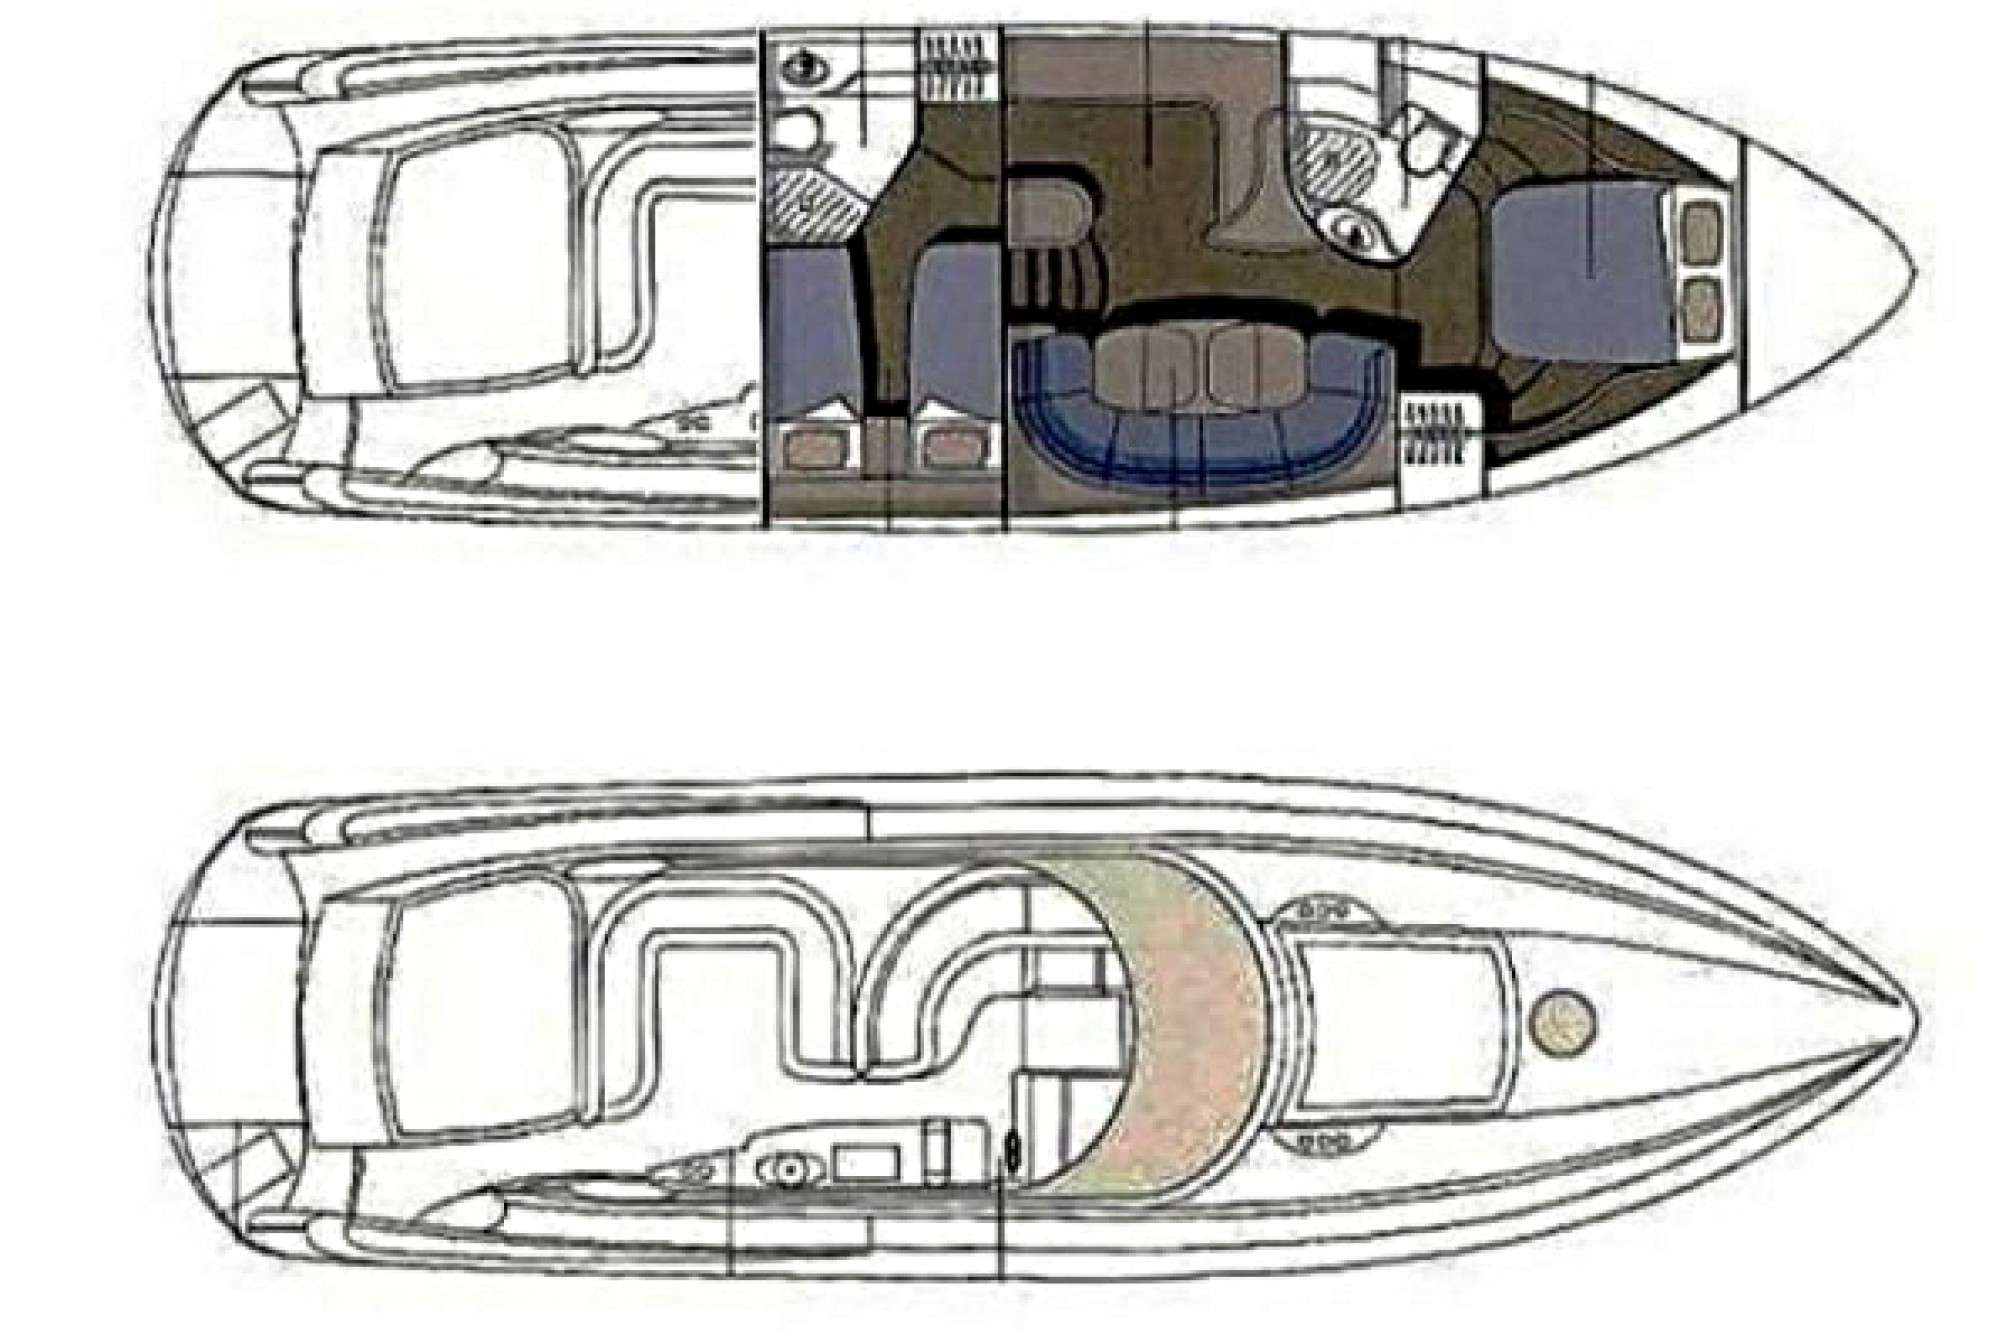 Sunseeker camargue 50 charter motorboat layout